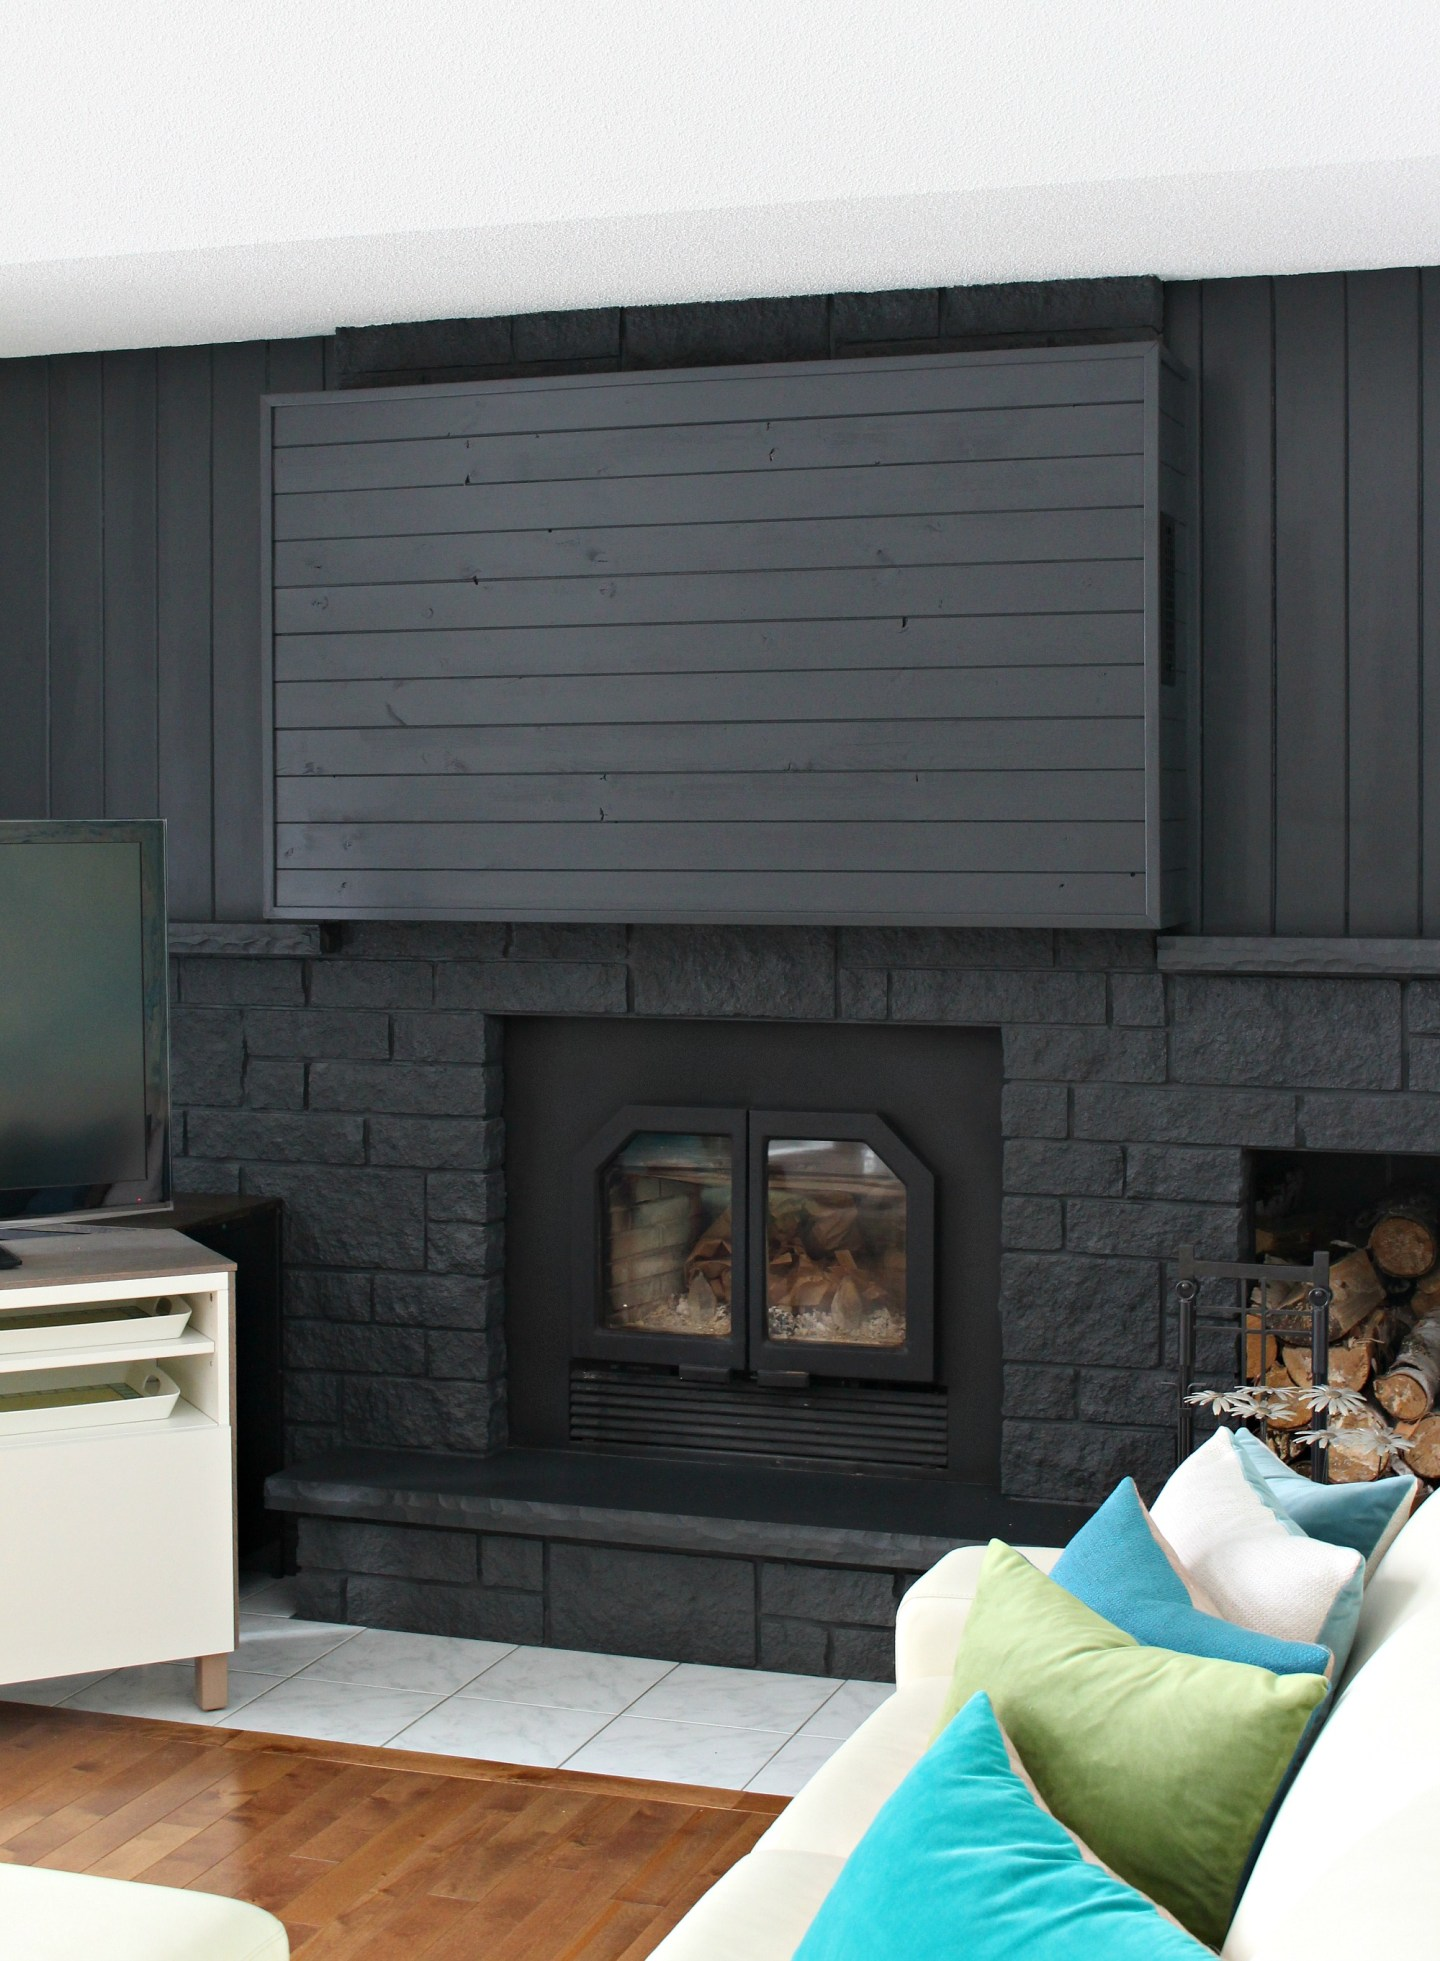 Can't Hang TV on Fireplace Solution